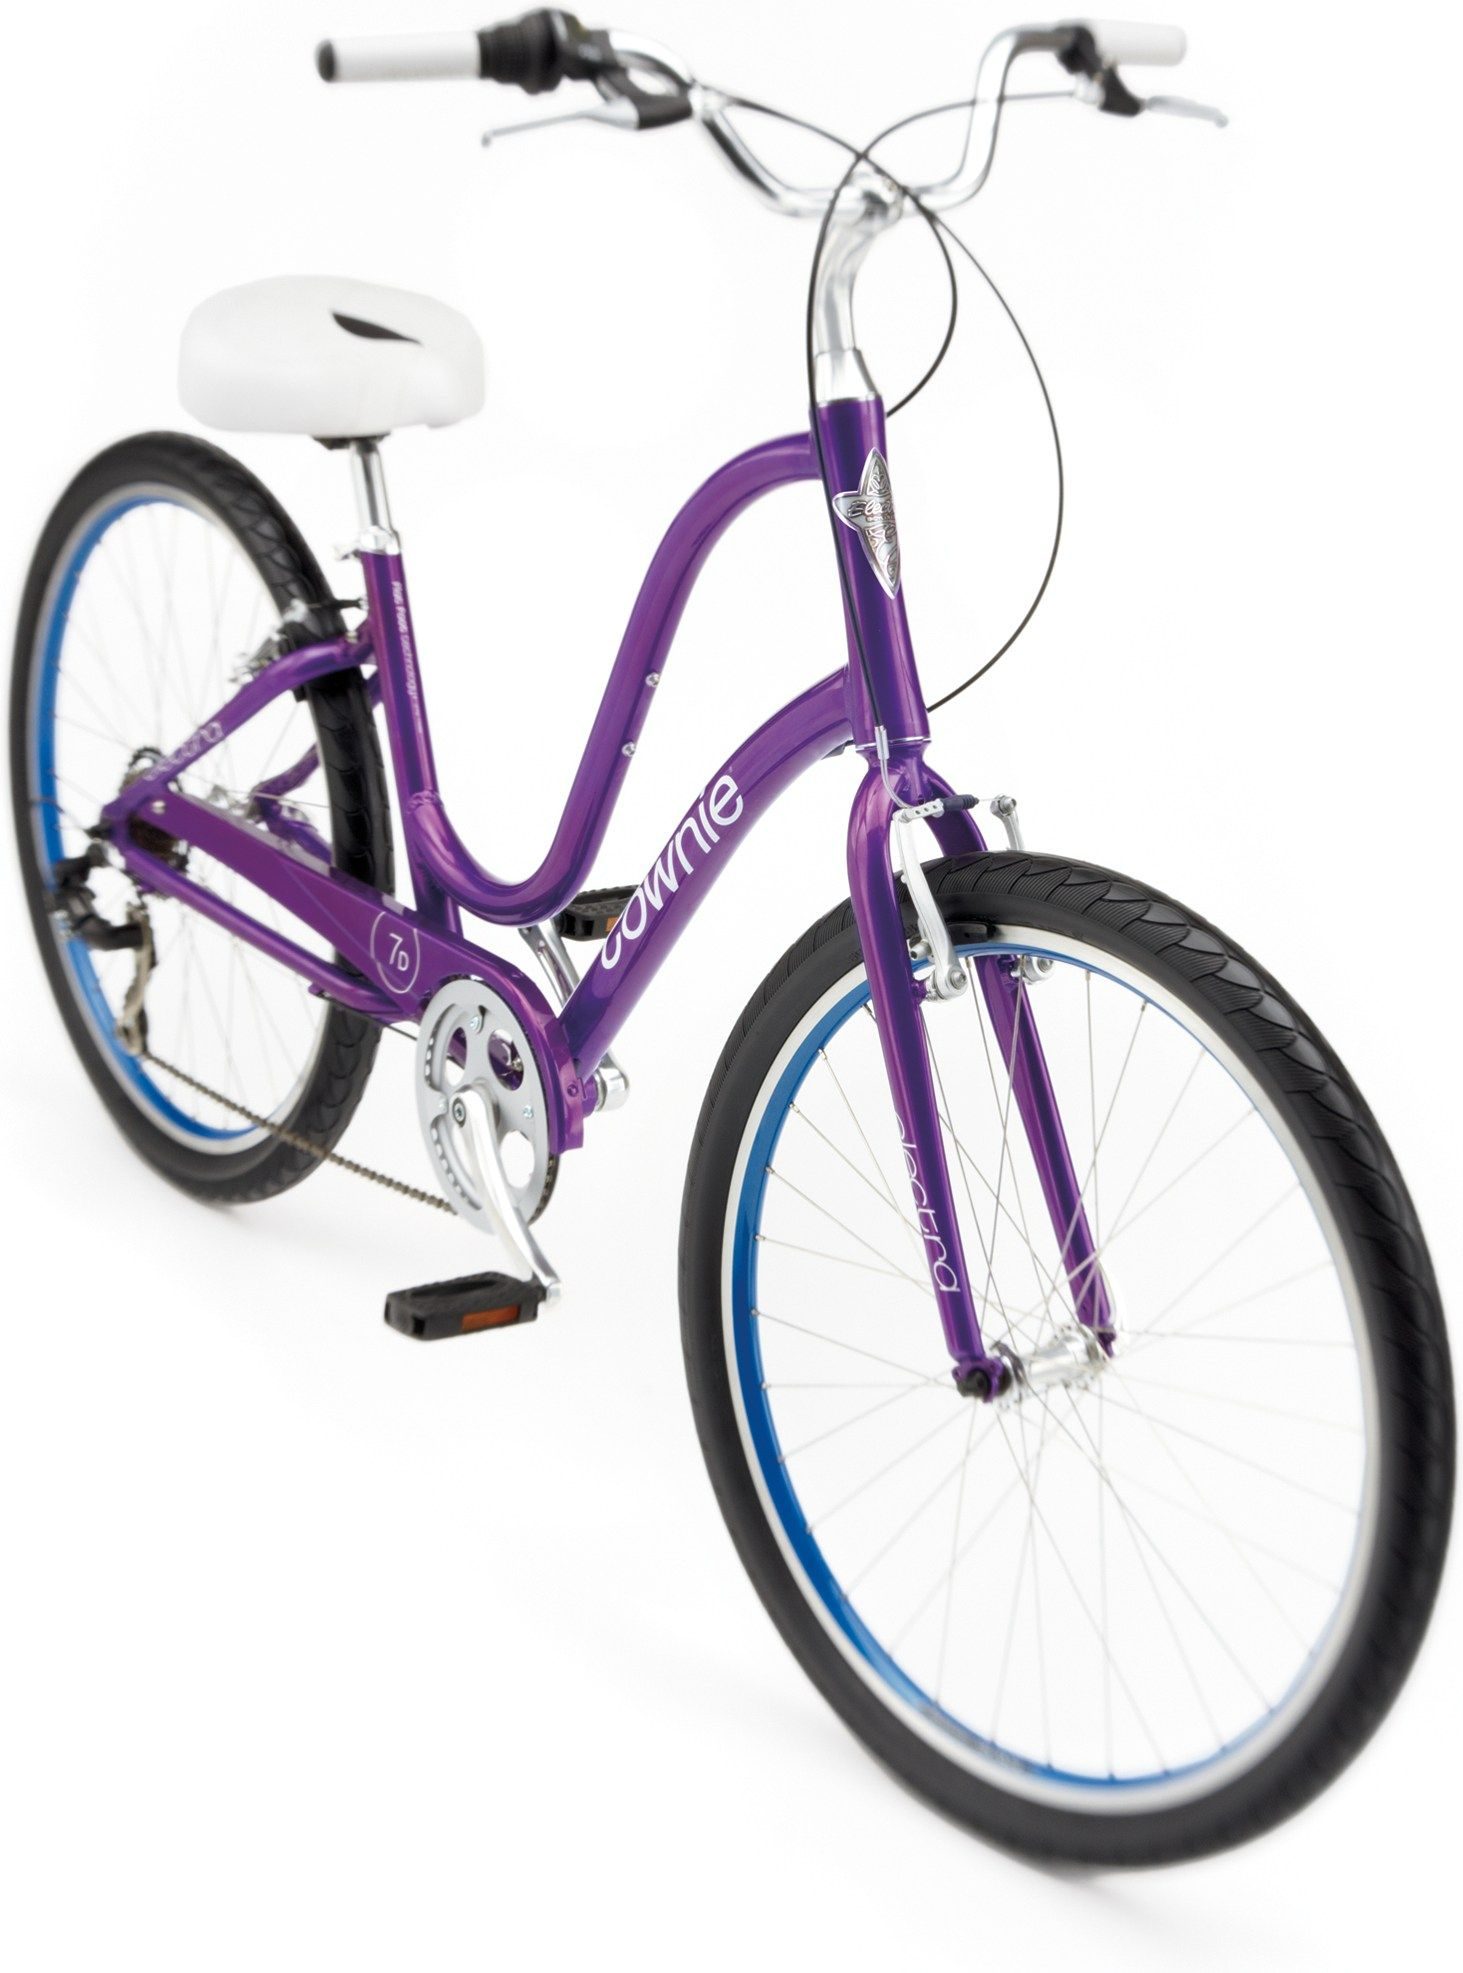 0c4d21017bb Townie 7D Step-Through Women's Bike | Bicycles Enjoy the Ride ...